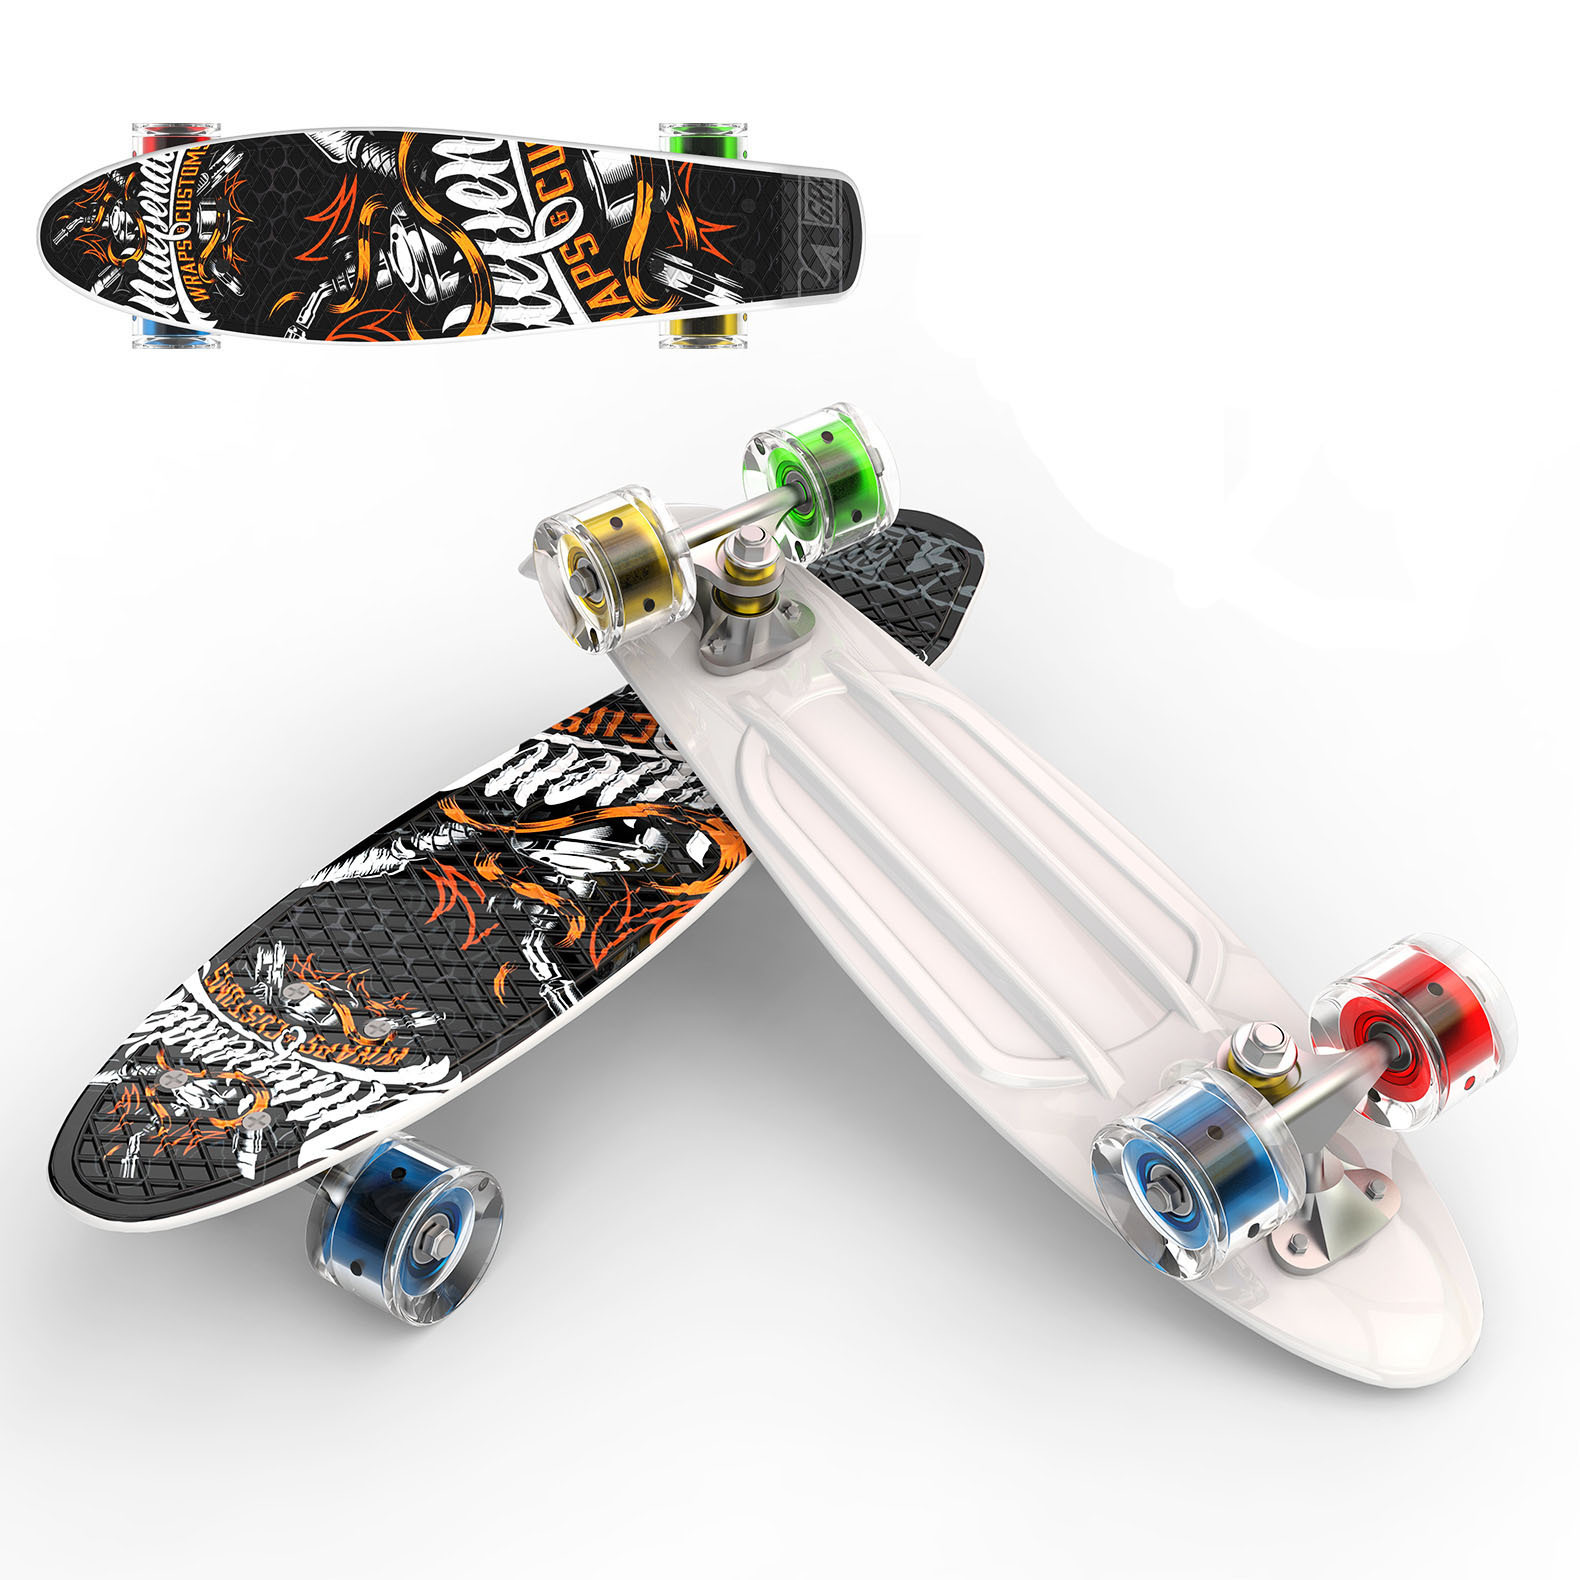 Manufacturers Single Rocker Four Wheel Skateboard  ride Instead Of Walk Printed Fish-shaped Board 22-Inch Fish-shaped Sole Board